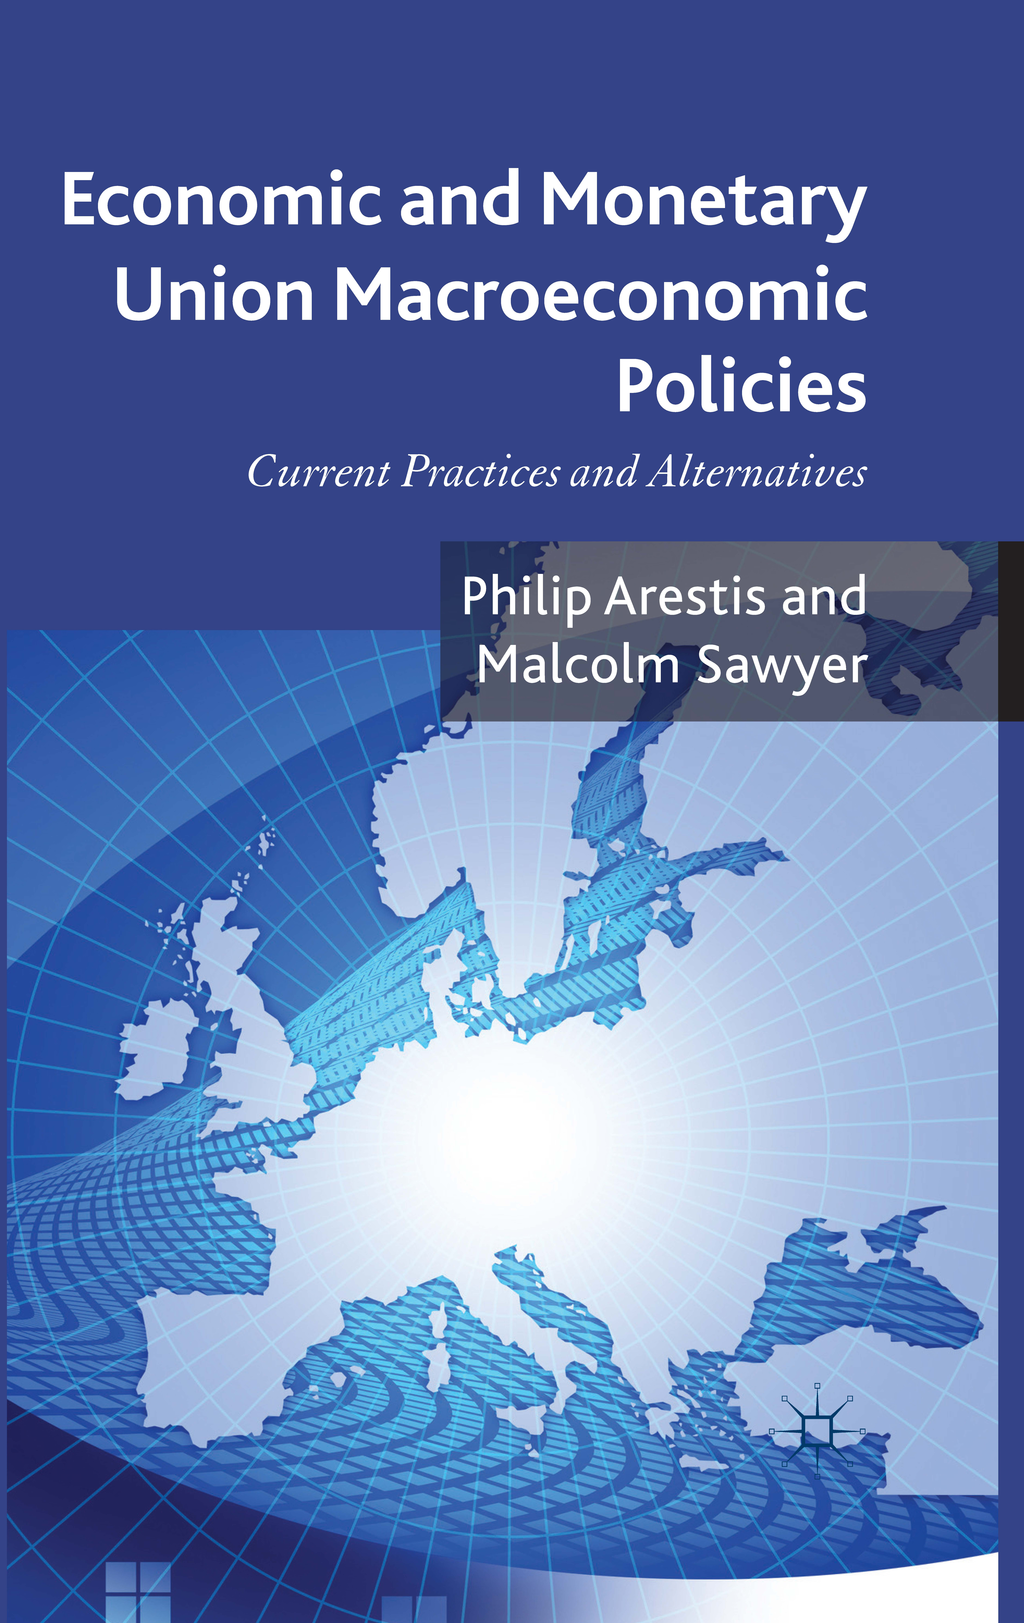 Economic and Monetary Union Macroeconomic Policies Current Practices and Alternatives